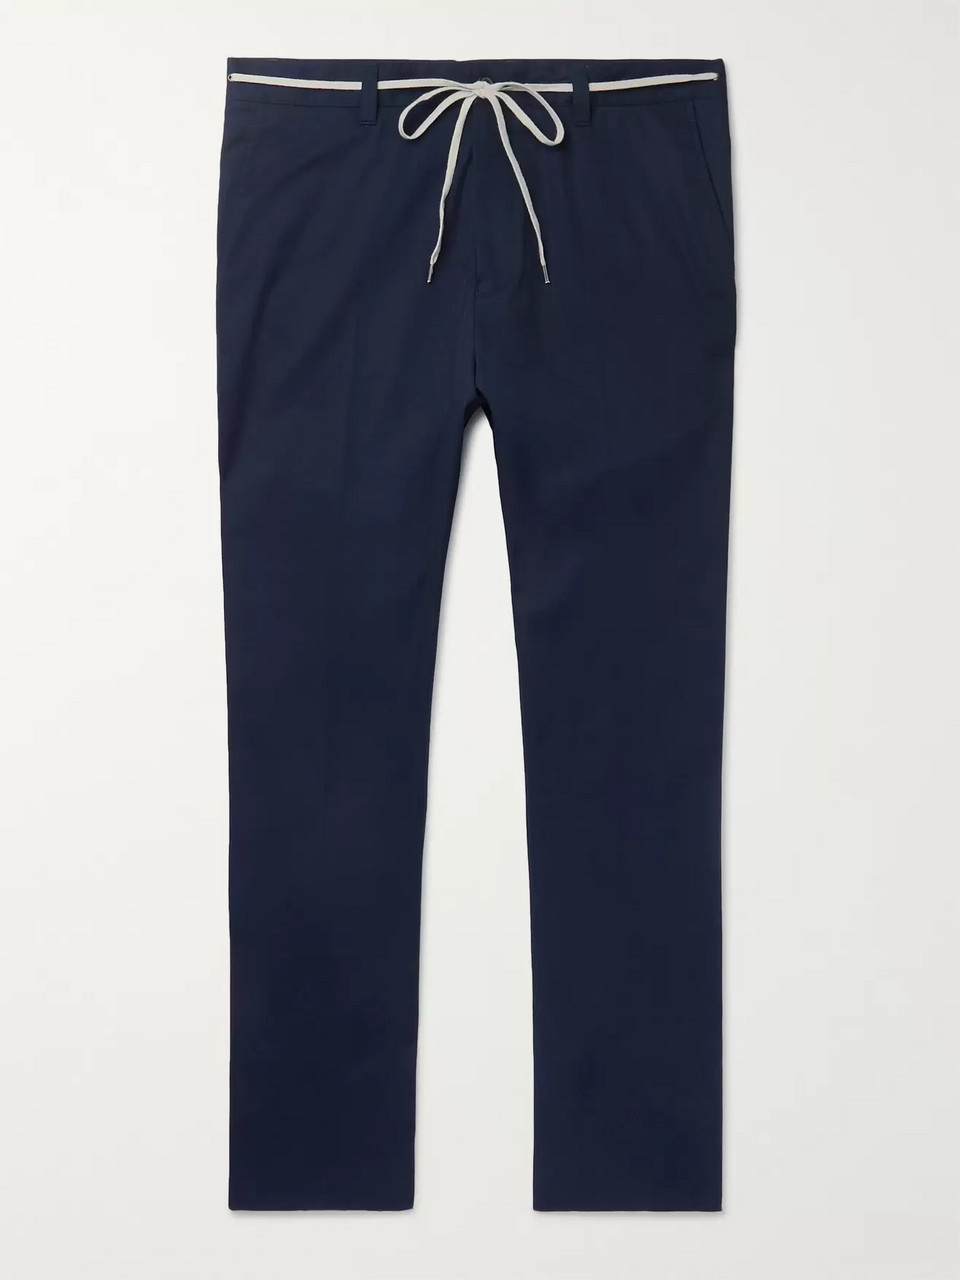 Lanvin Navy Slim-Fit Cotton Trousers